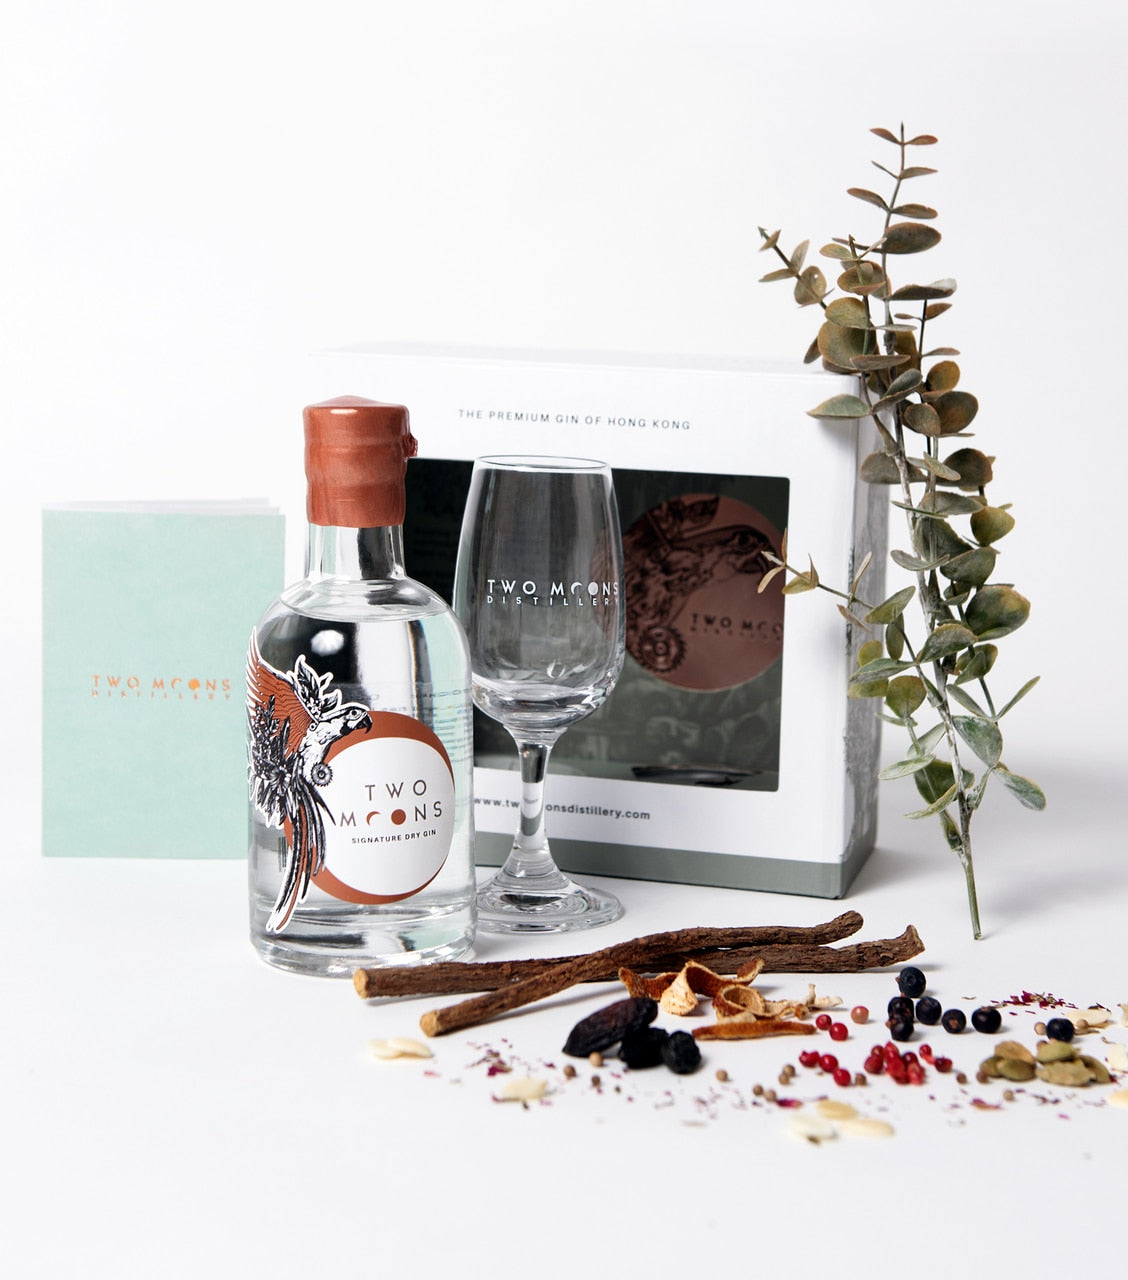 Two Moons Signature Dry Gin Tasting Set